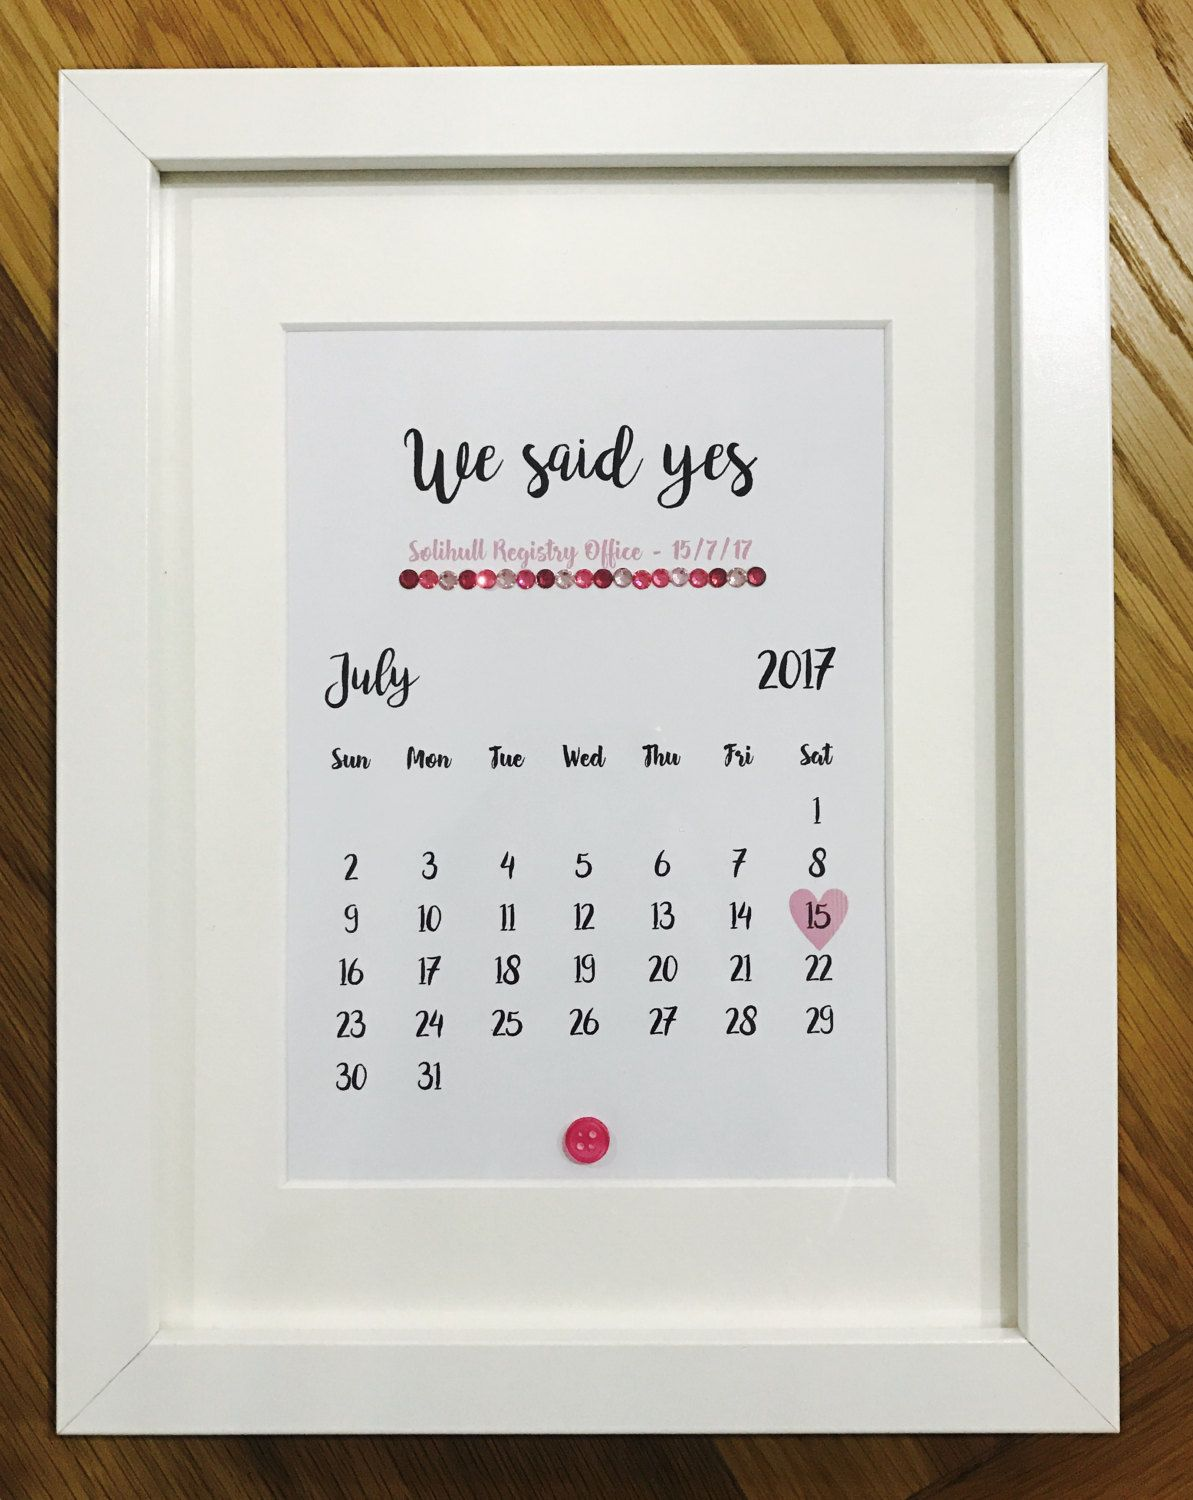 We Said Yes Wedding Frame By Everyoneneedsabutton On Etsy Wedding Frames Wedding Calendar Frame